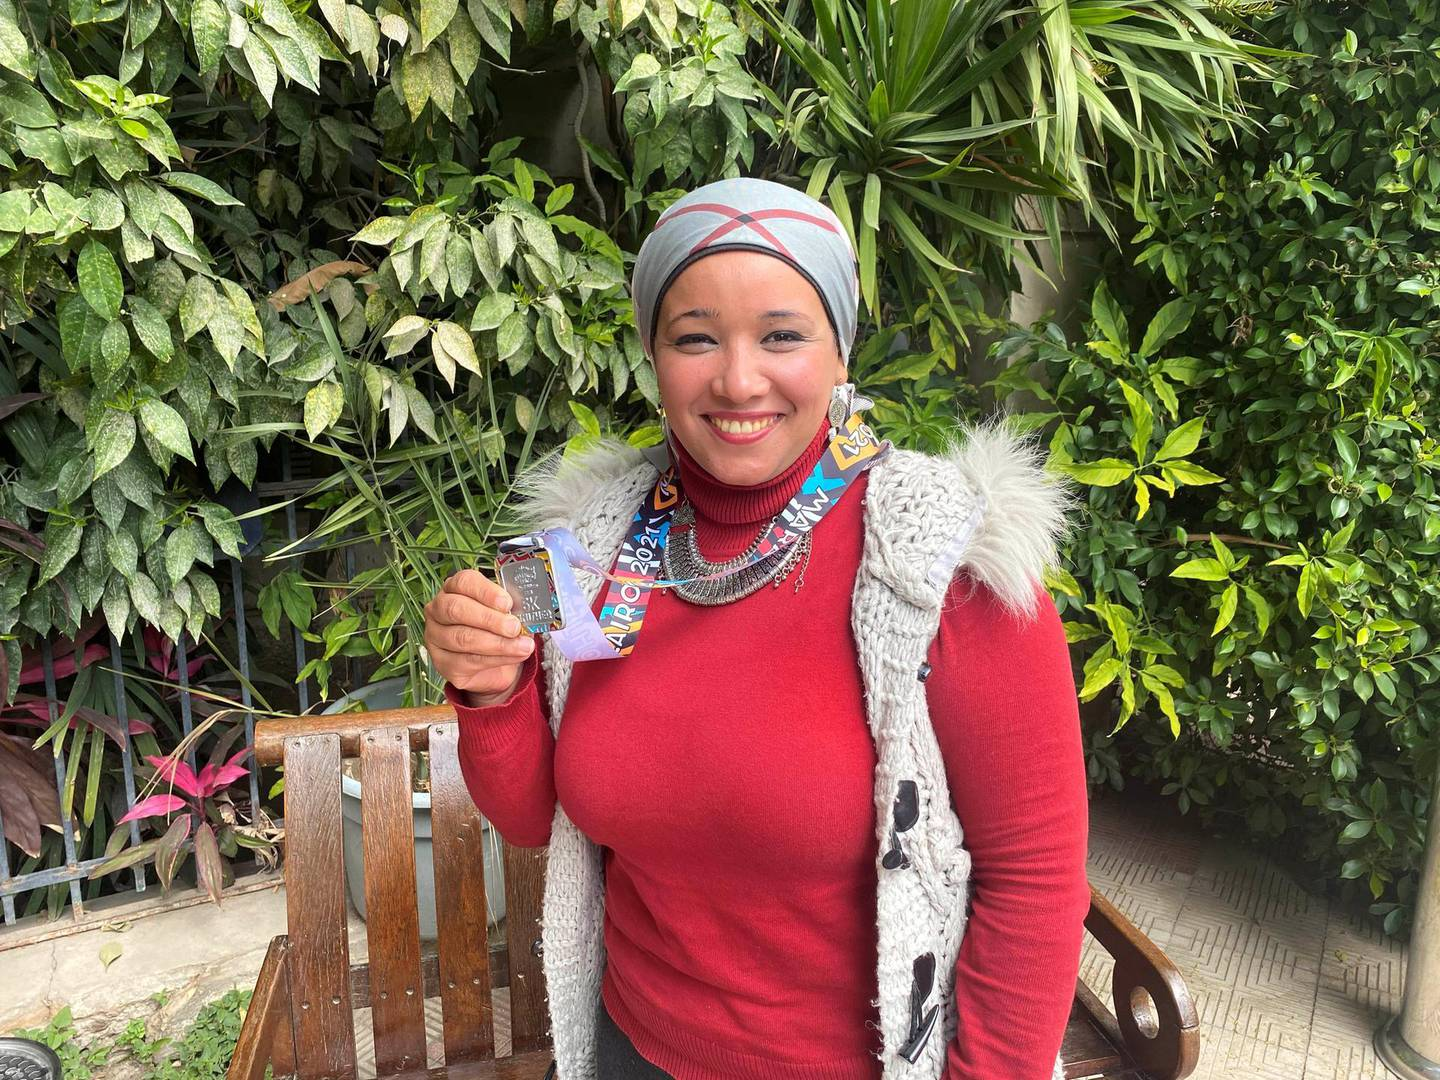 Hamida Azouz, 35, has committed to exercising and eating healthy in the past year. Nada El Sawy / The National